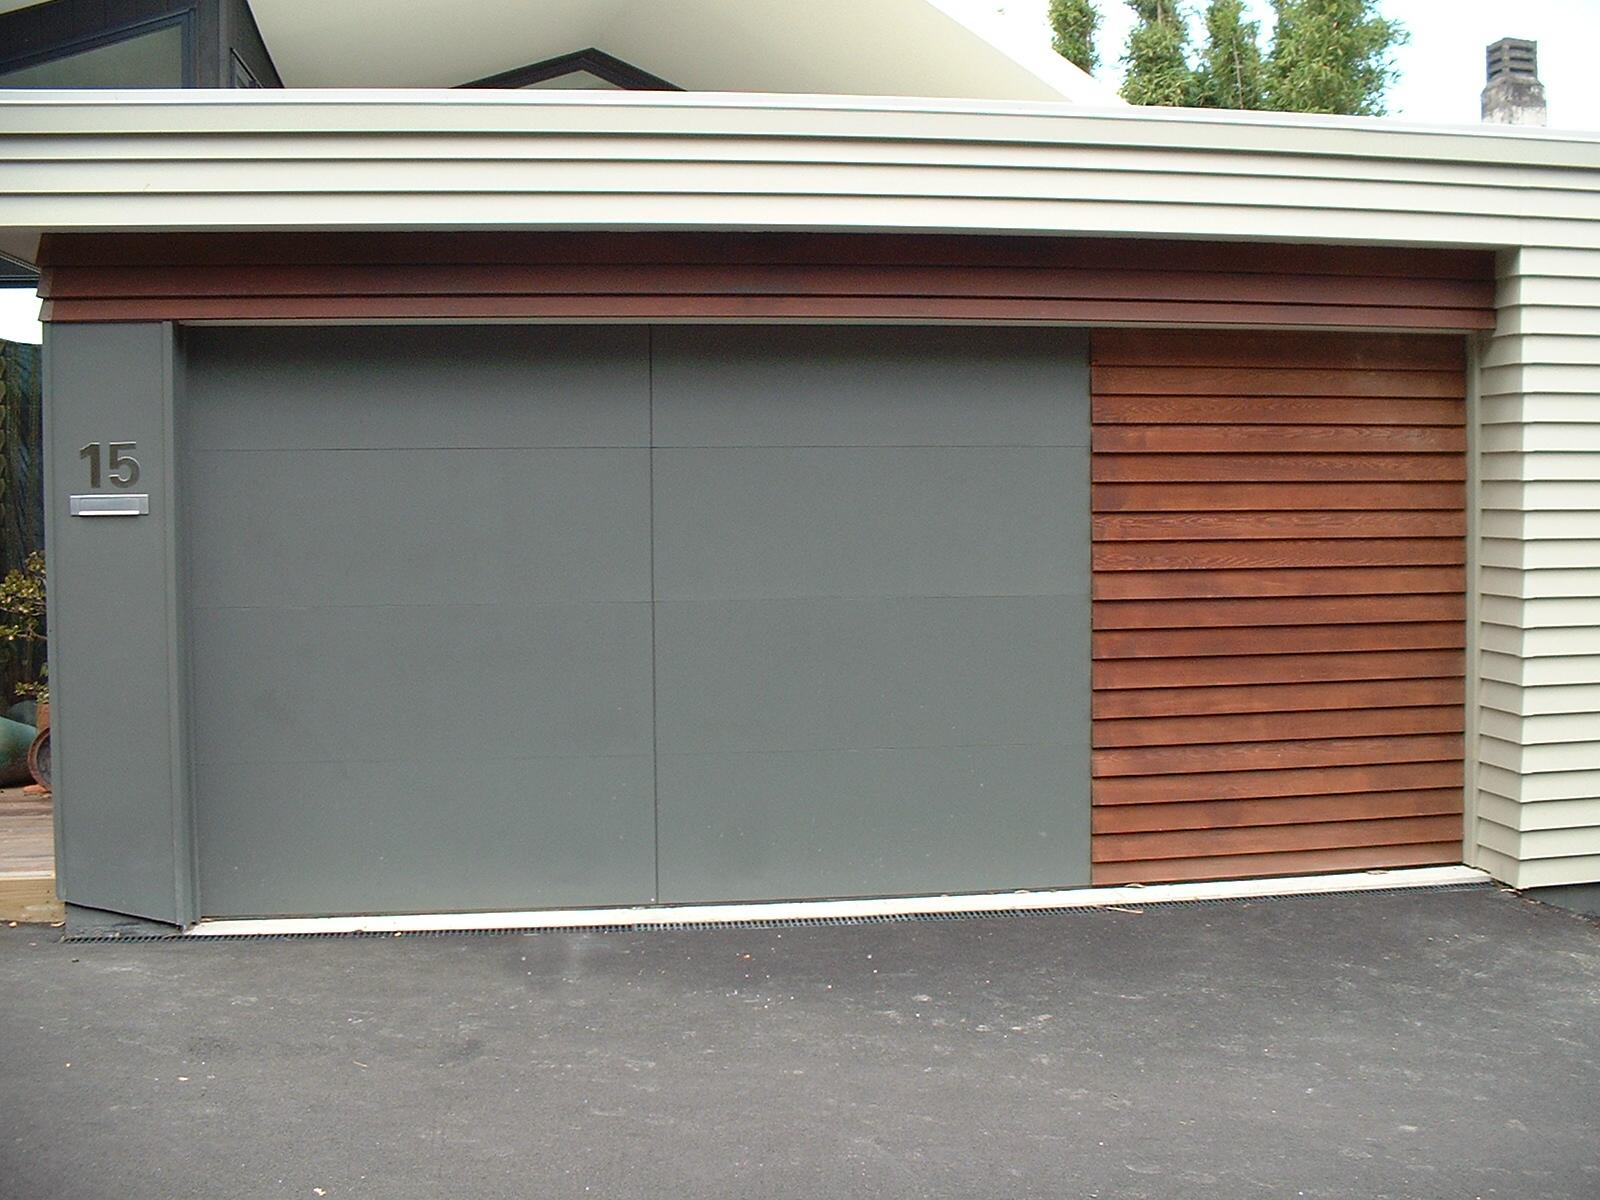 special designer garage doors craftwork construction make a sketch or photo of your idea and discuss with our team today